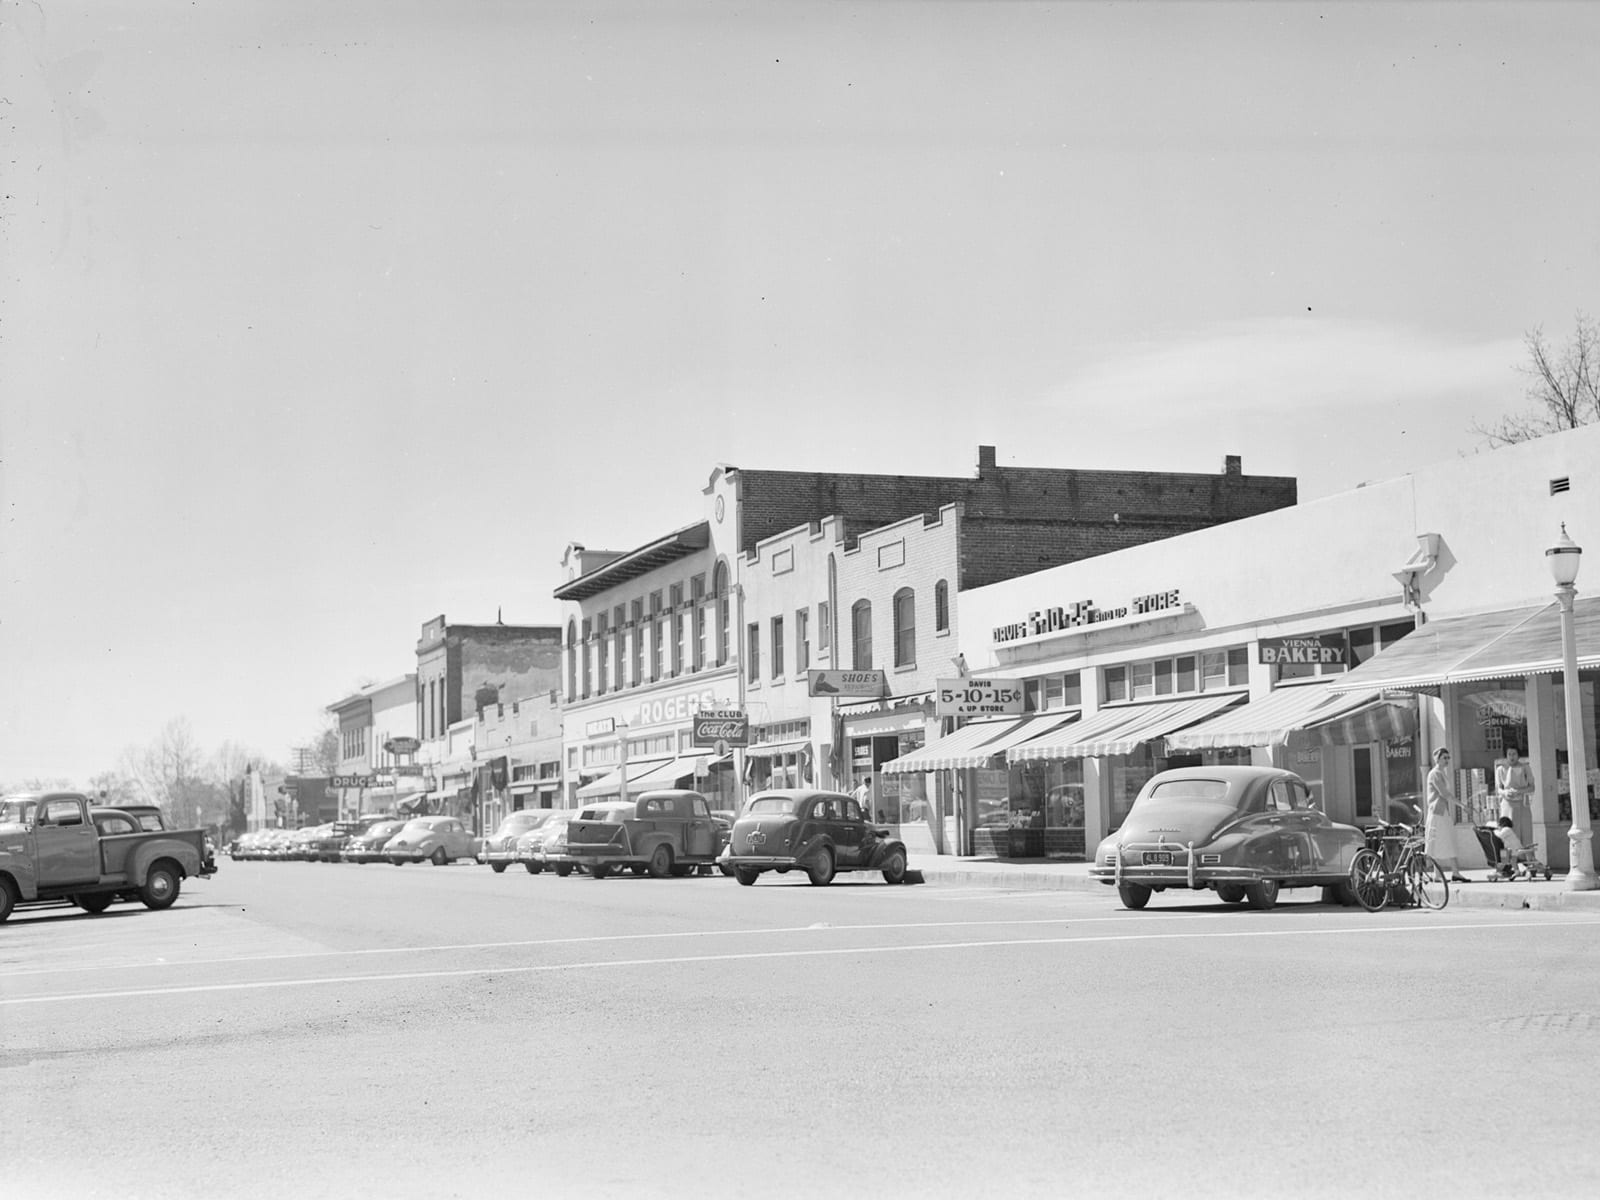 G Street, looking south, 1951